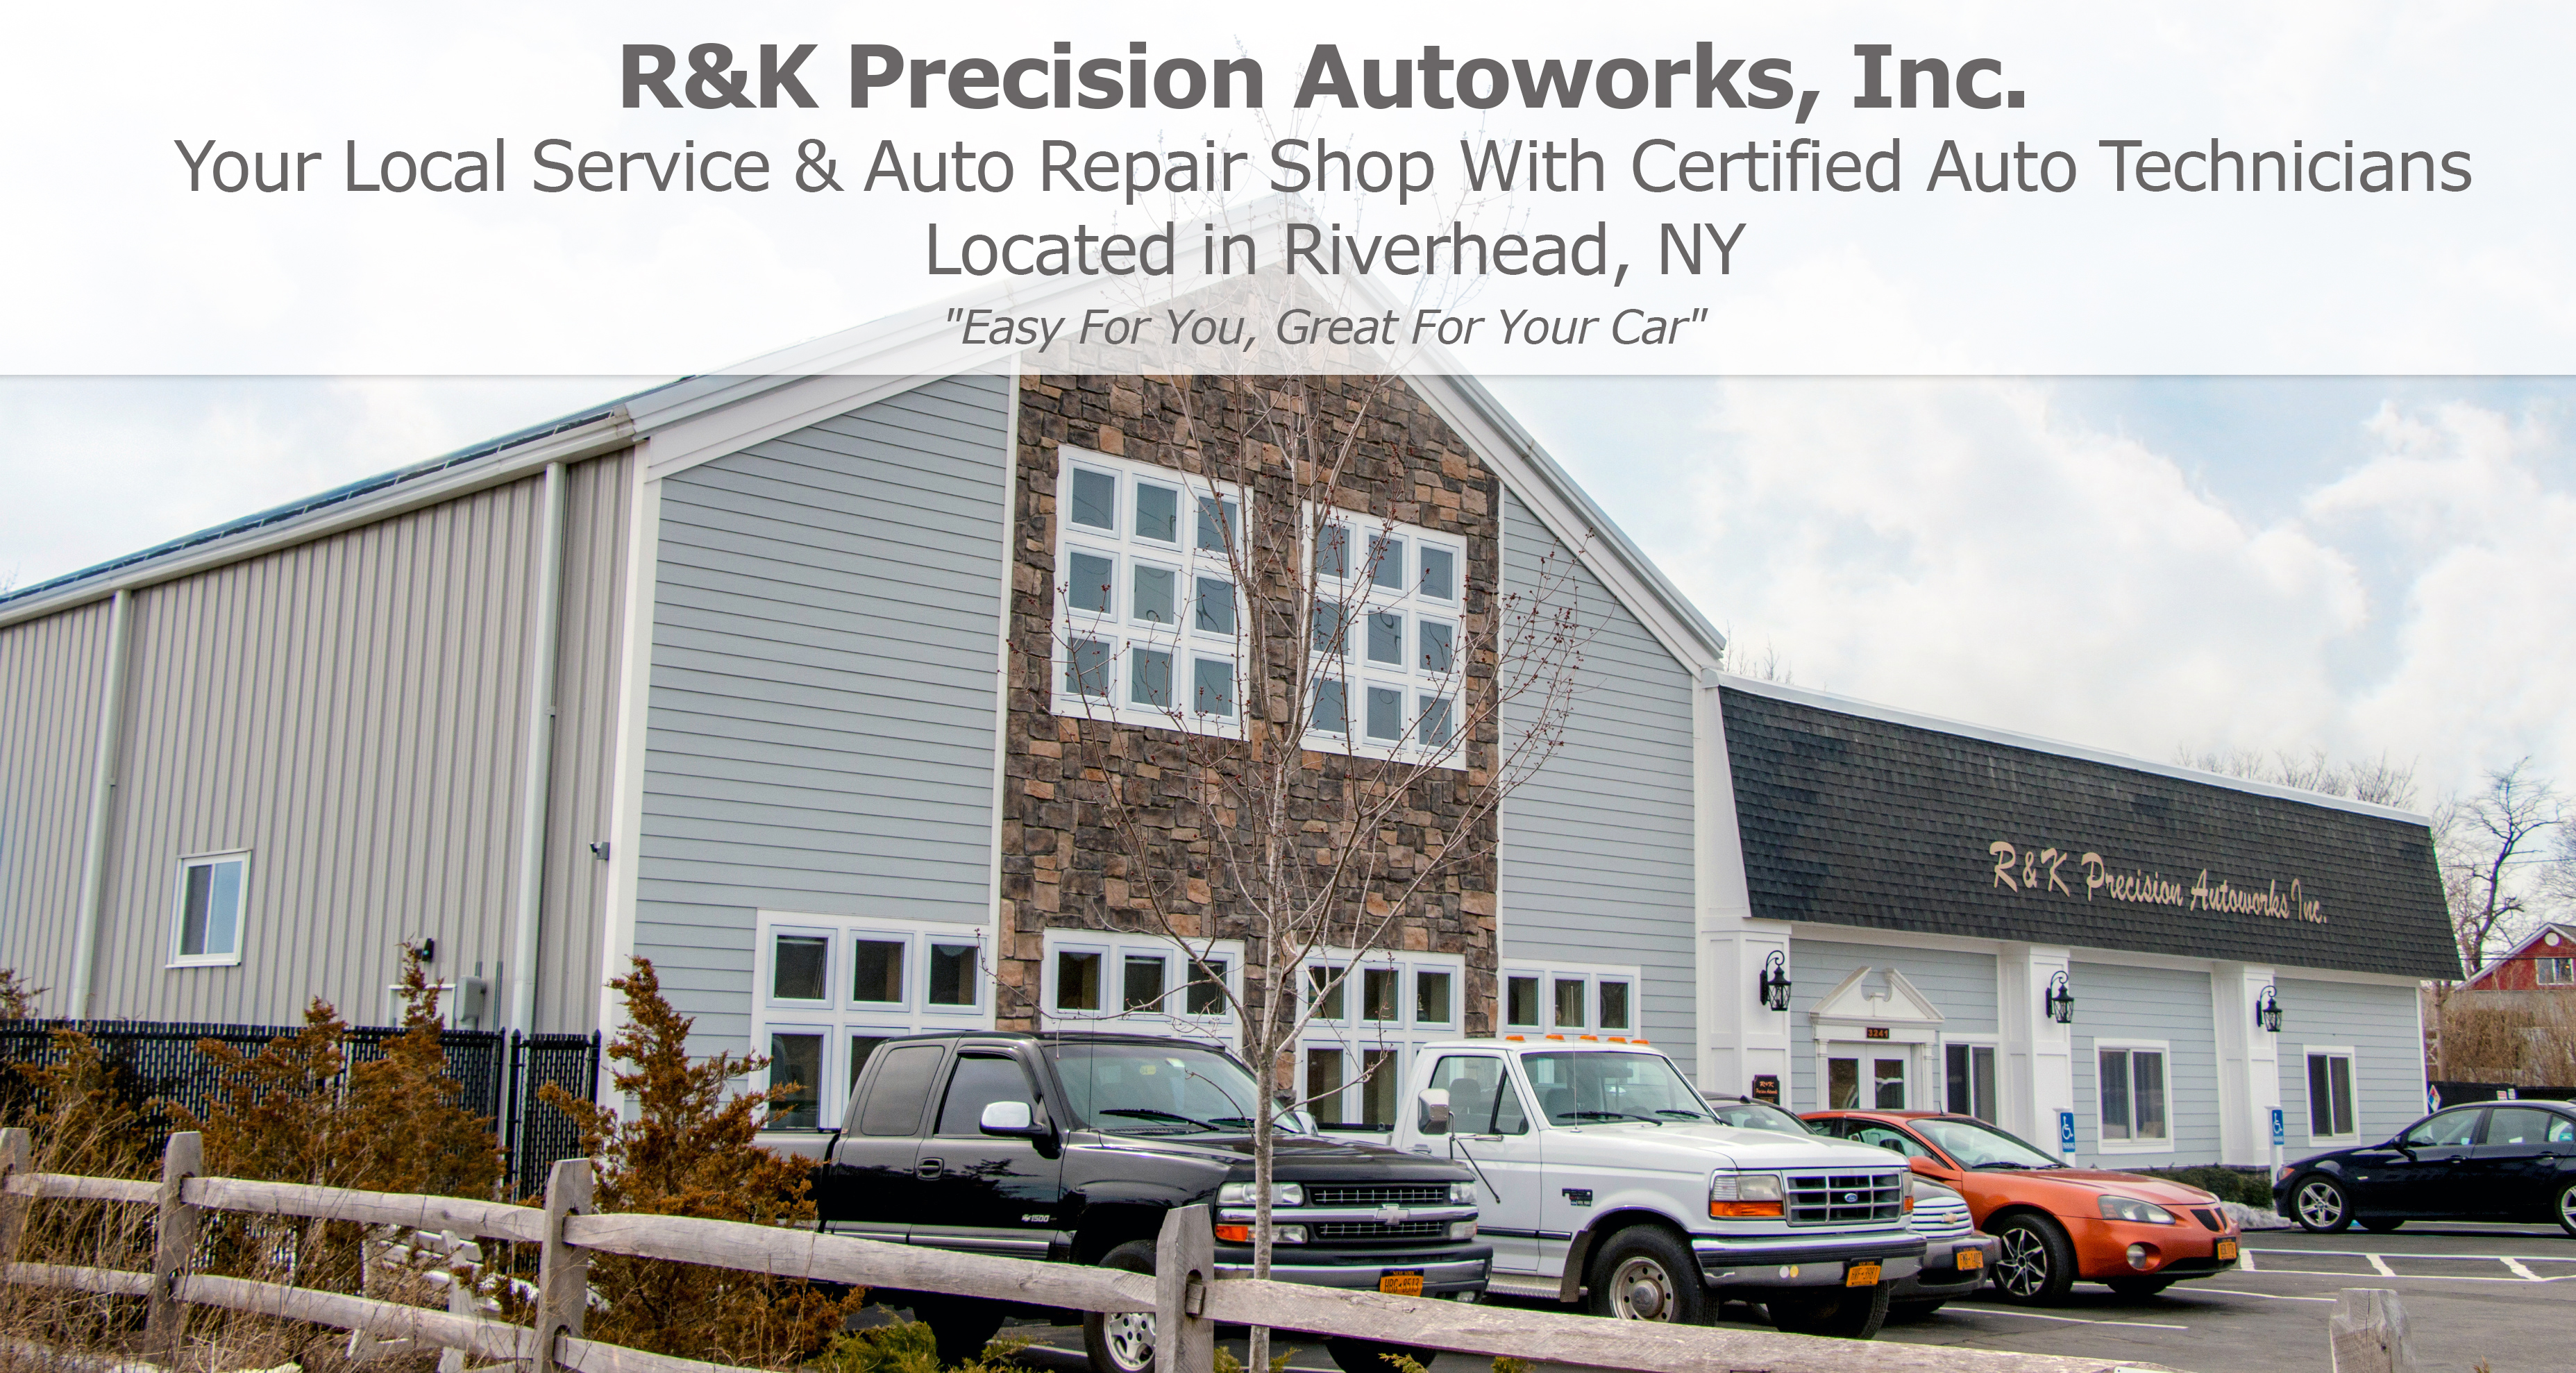 A And M Auto >> Rk Precision Autoworks Certified Auto Technicians Local